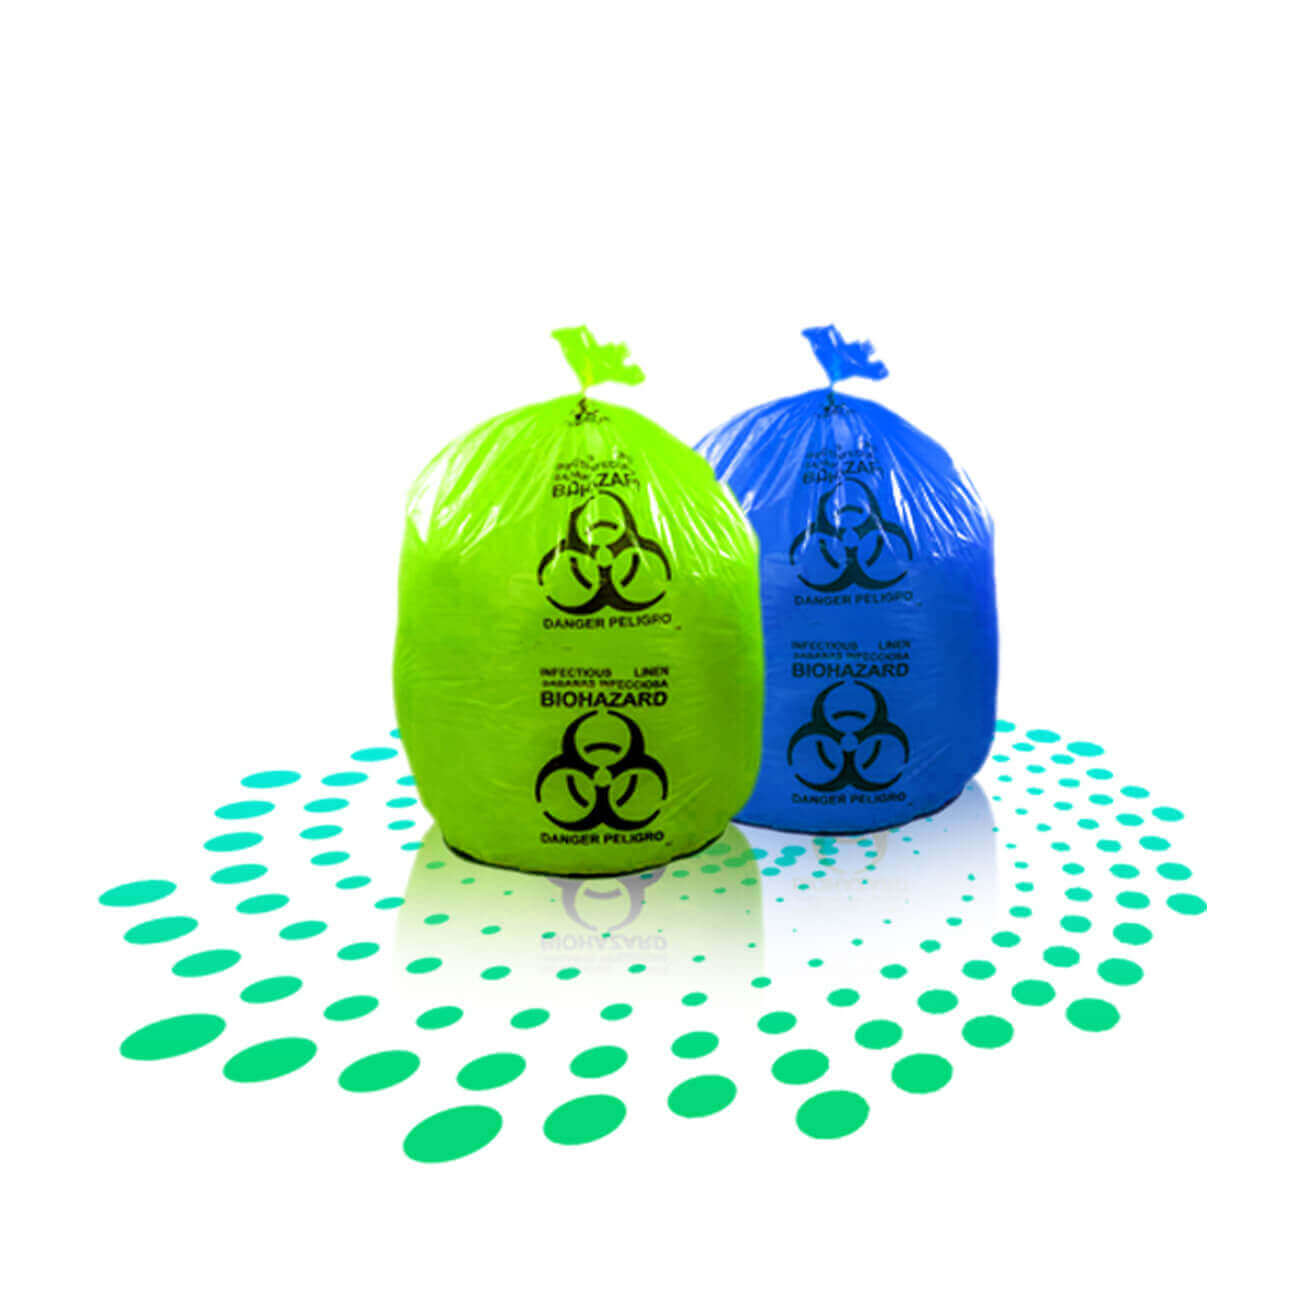 Biohazard bags medical waste bags manufacturer in uae super plast 100 biodegradable customized size customized micronthickness customized colour high load bearing strength customized printing biocorpaavc